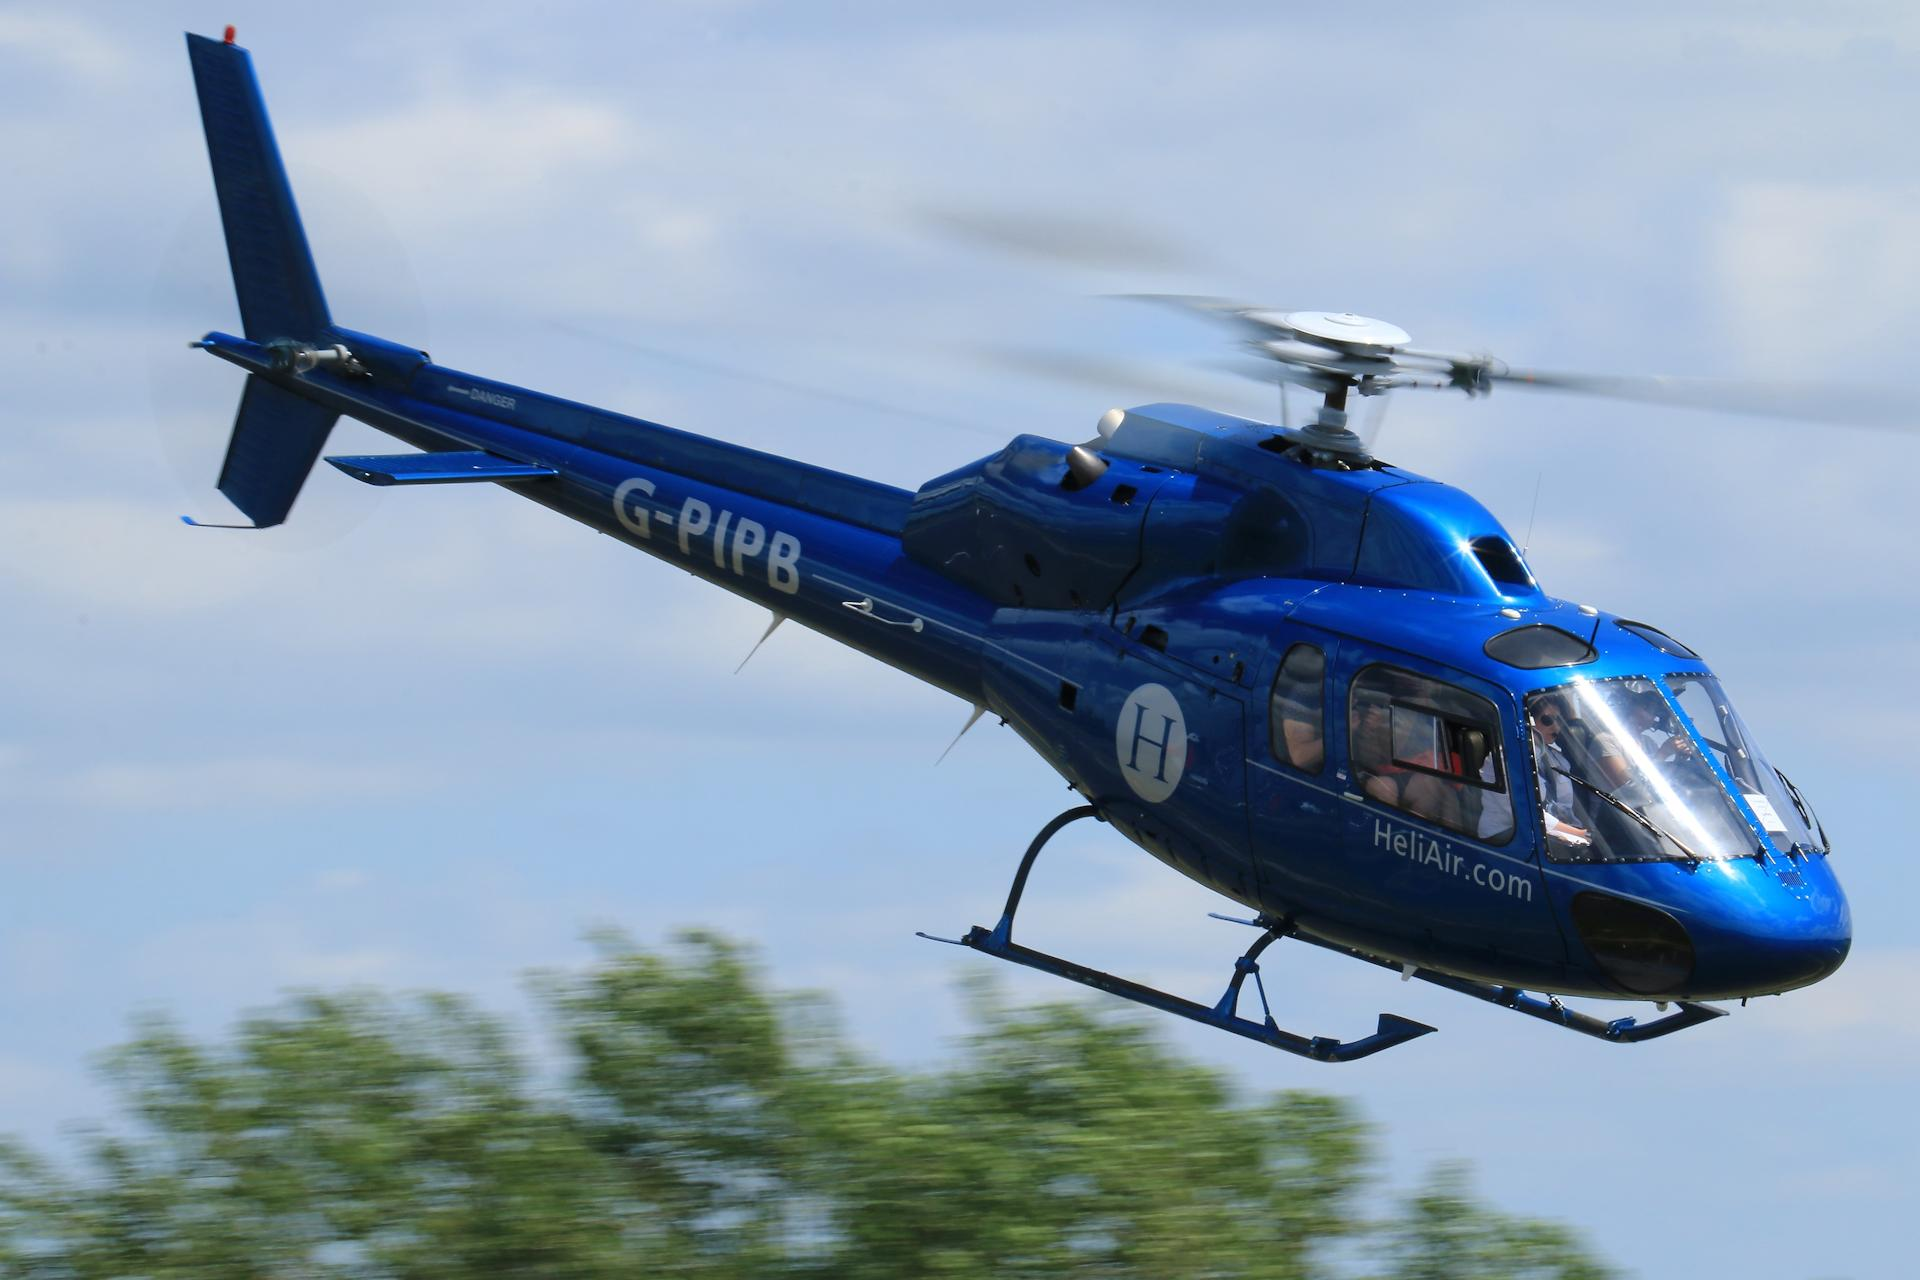 helicopter flight instruction videos